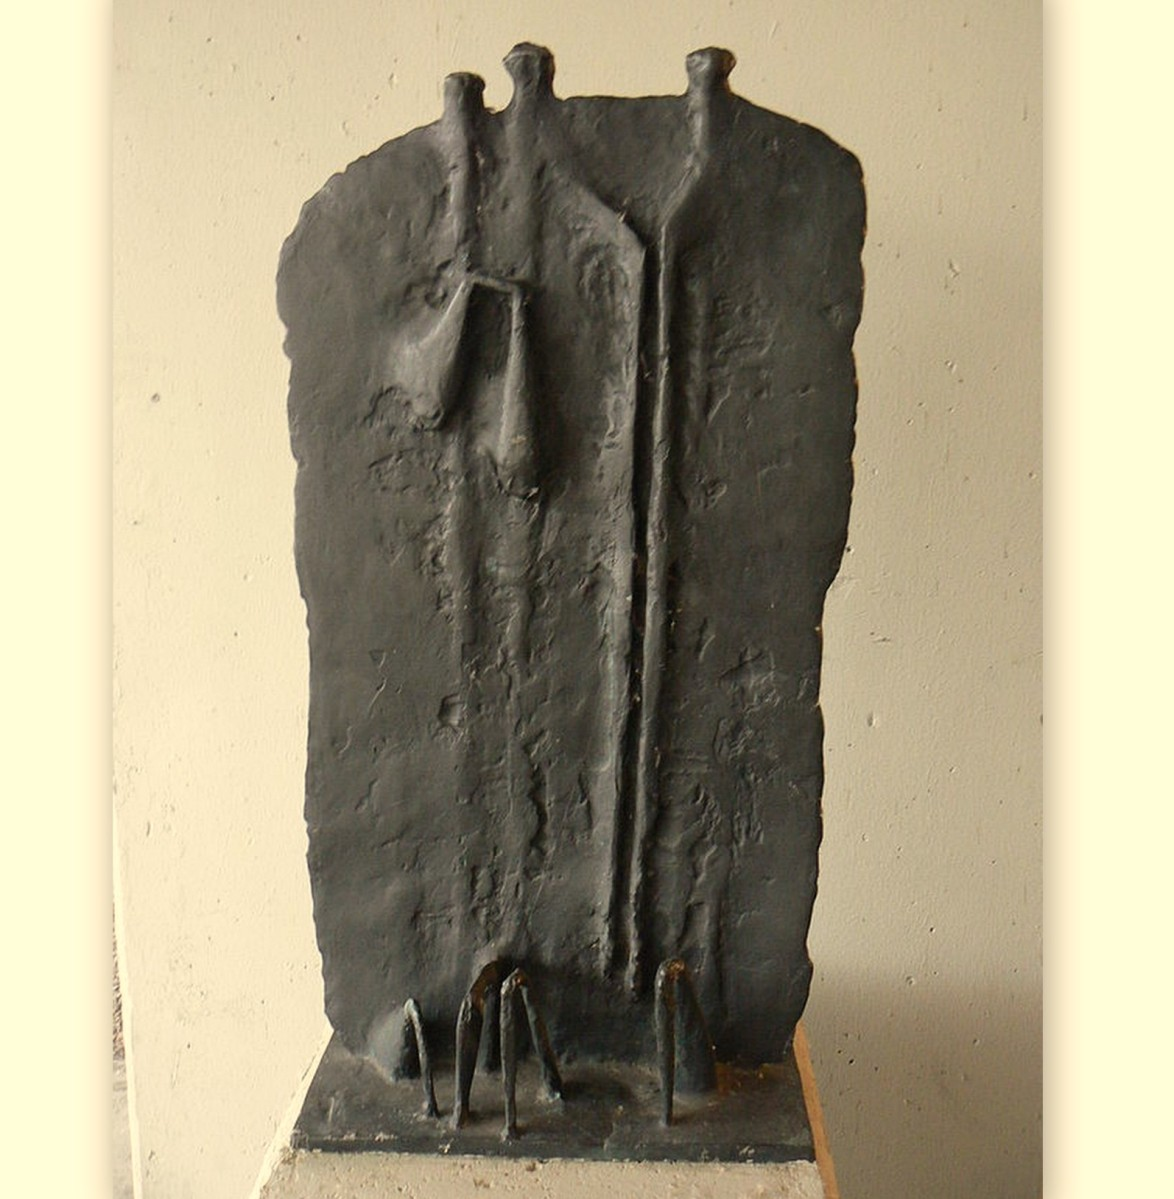 Postwar Expressionist Sculpture: Kenneth Armitage